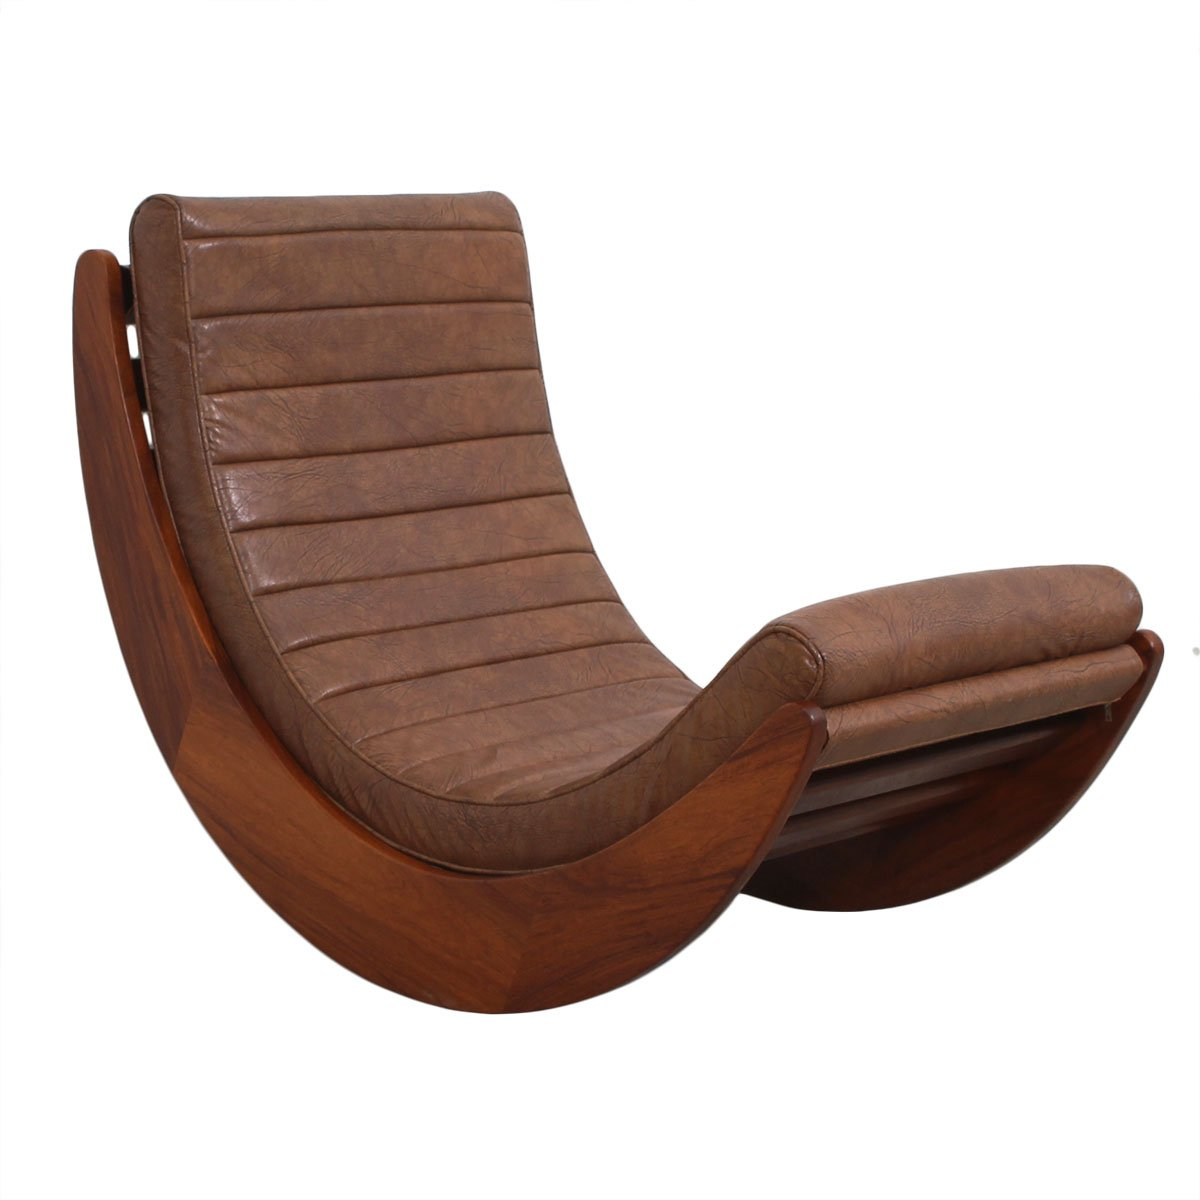 Verner Panton Relaxer Rocking Lounge Chair